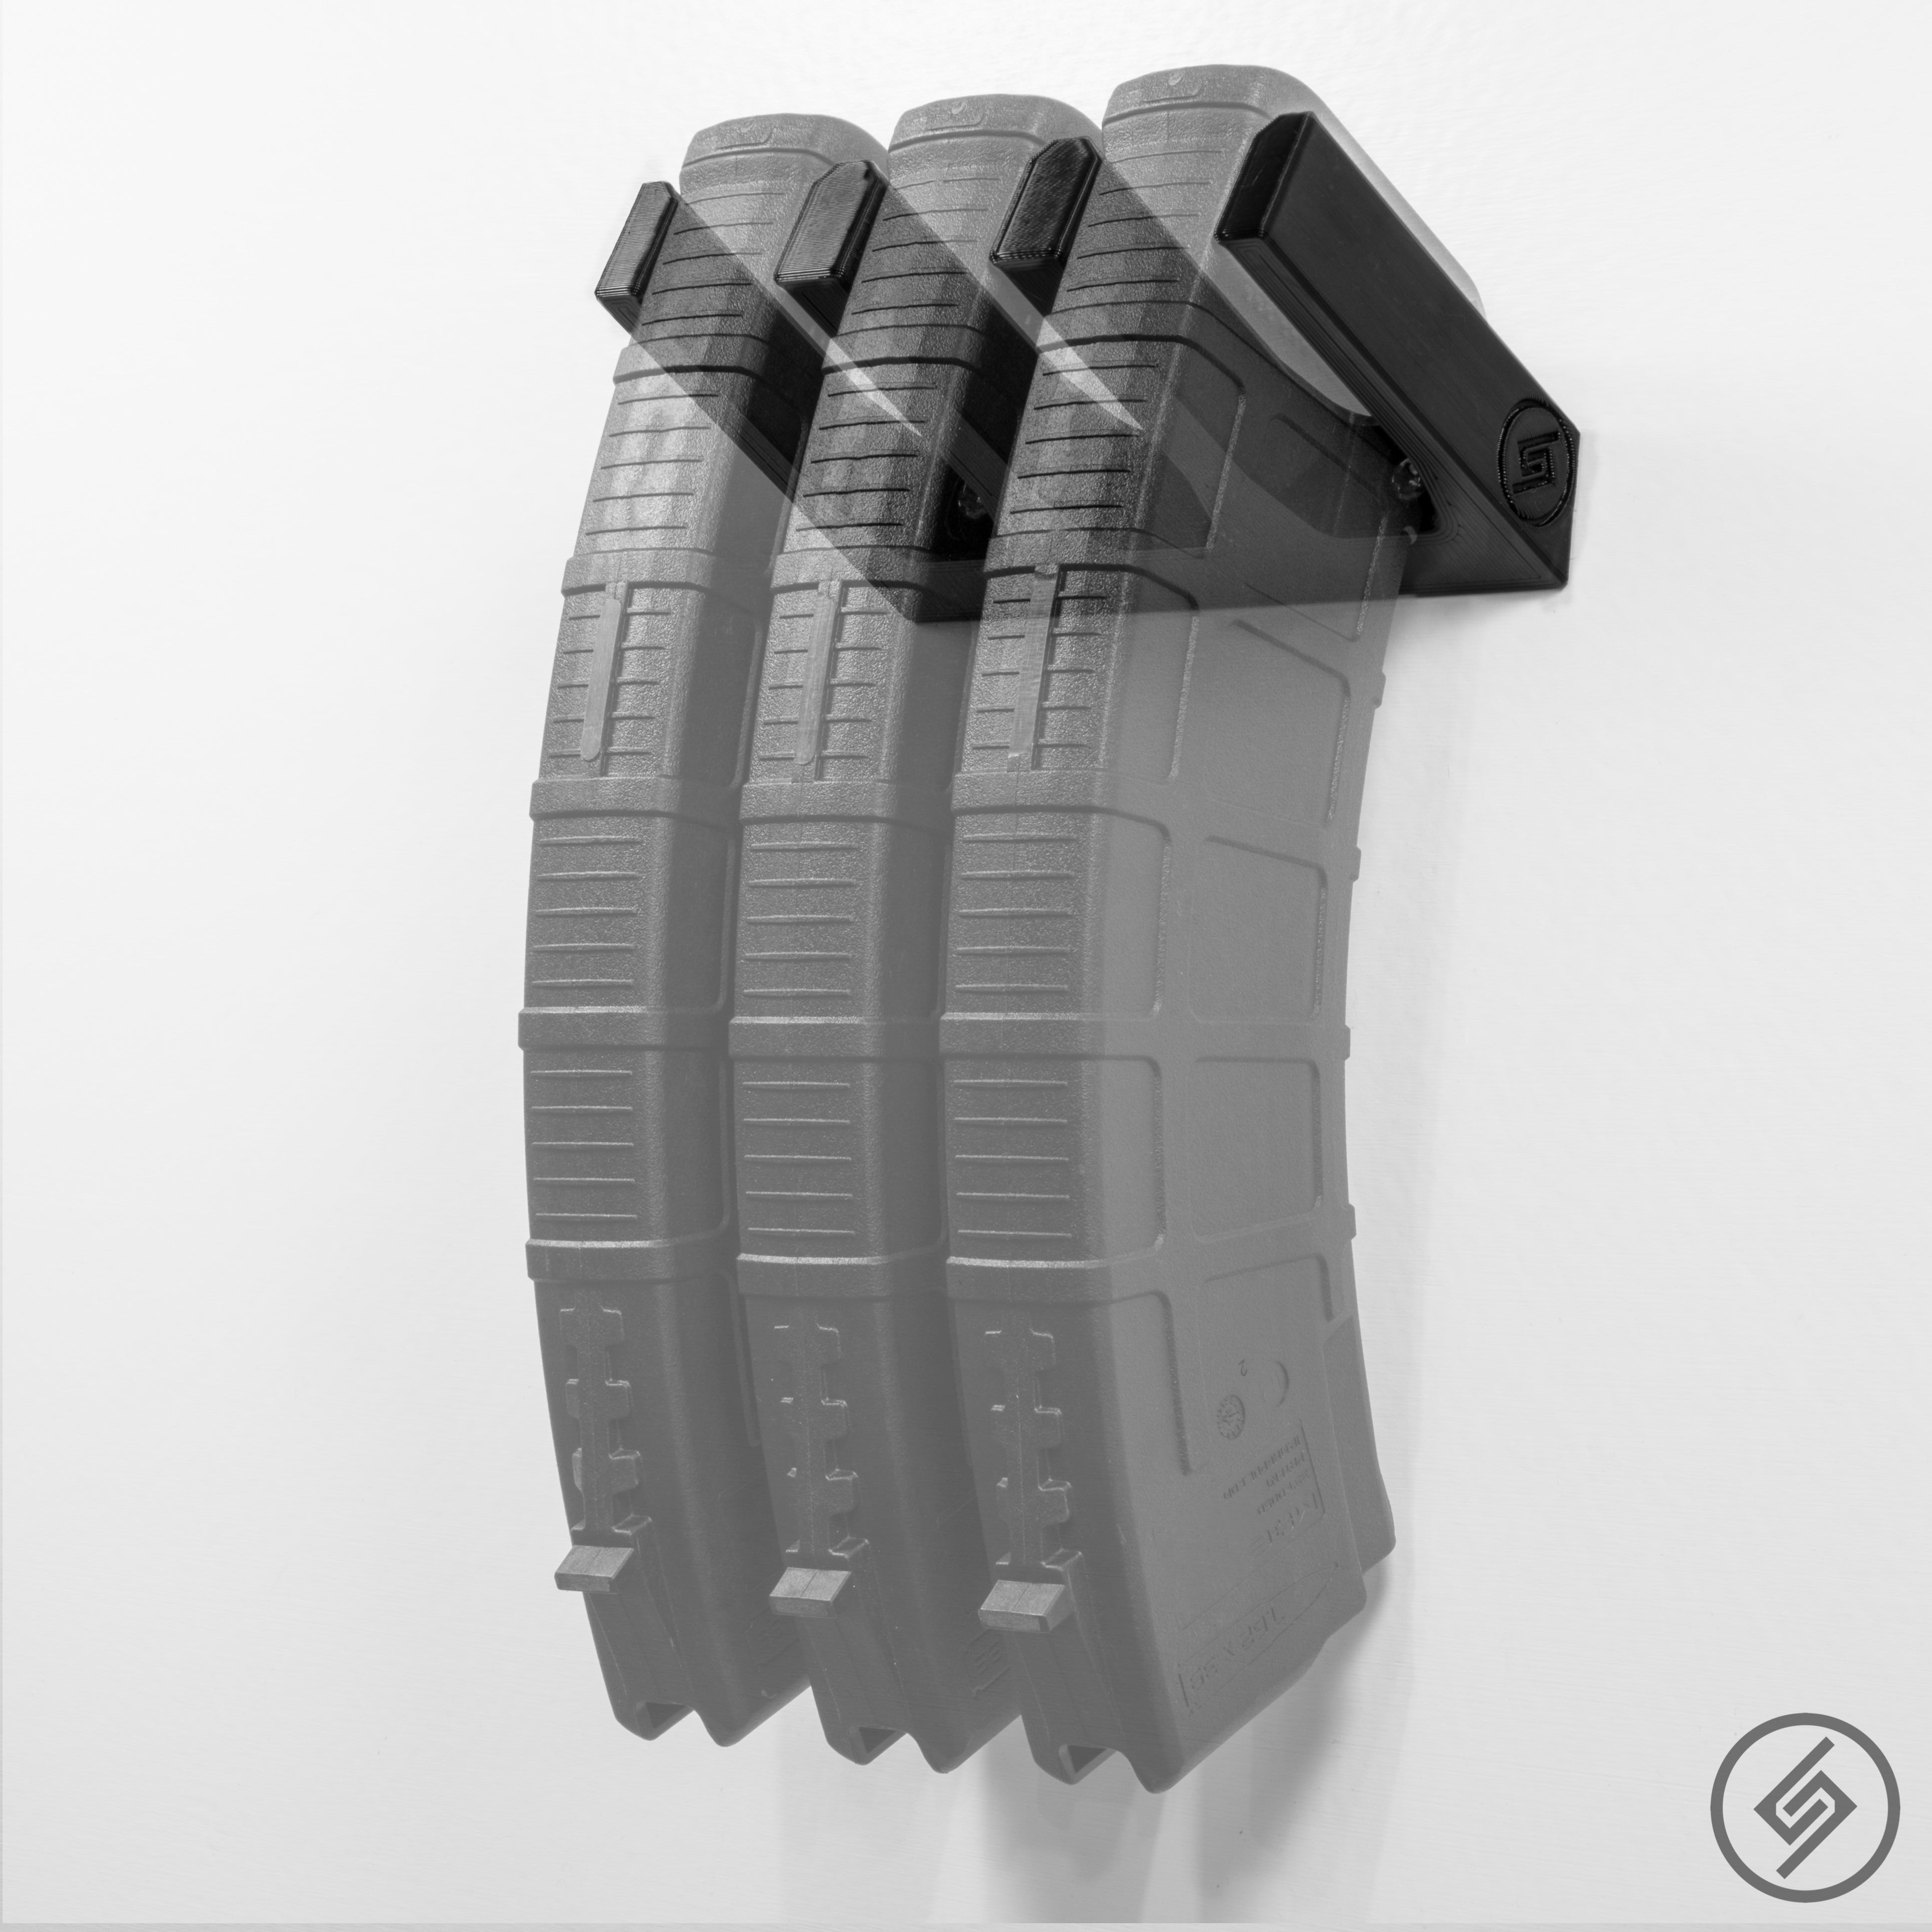 Mount for 3 AK-47 7.62x39 PMAG magazines, Spartan Mounts, Transparent